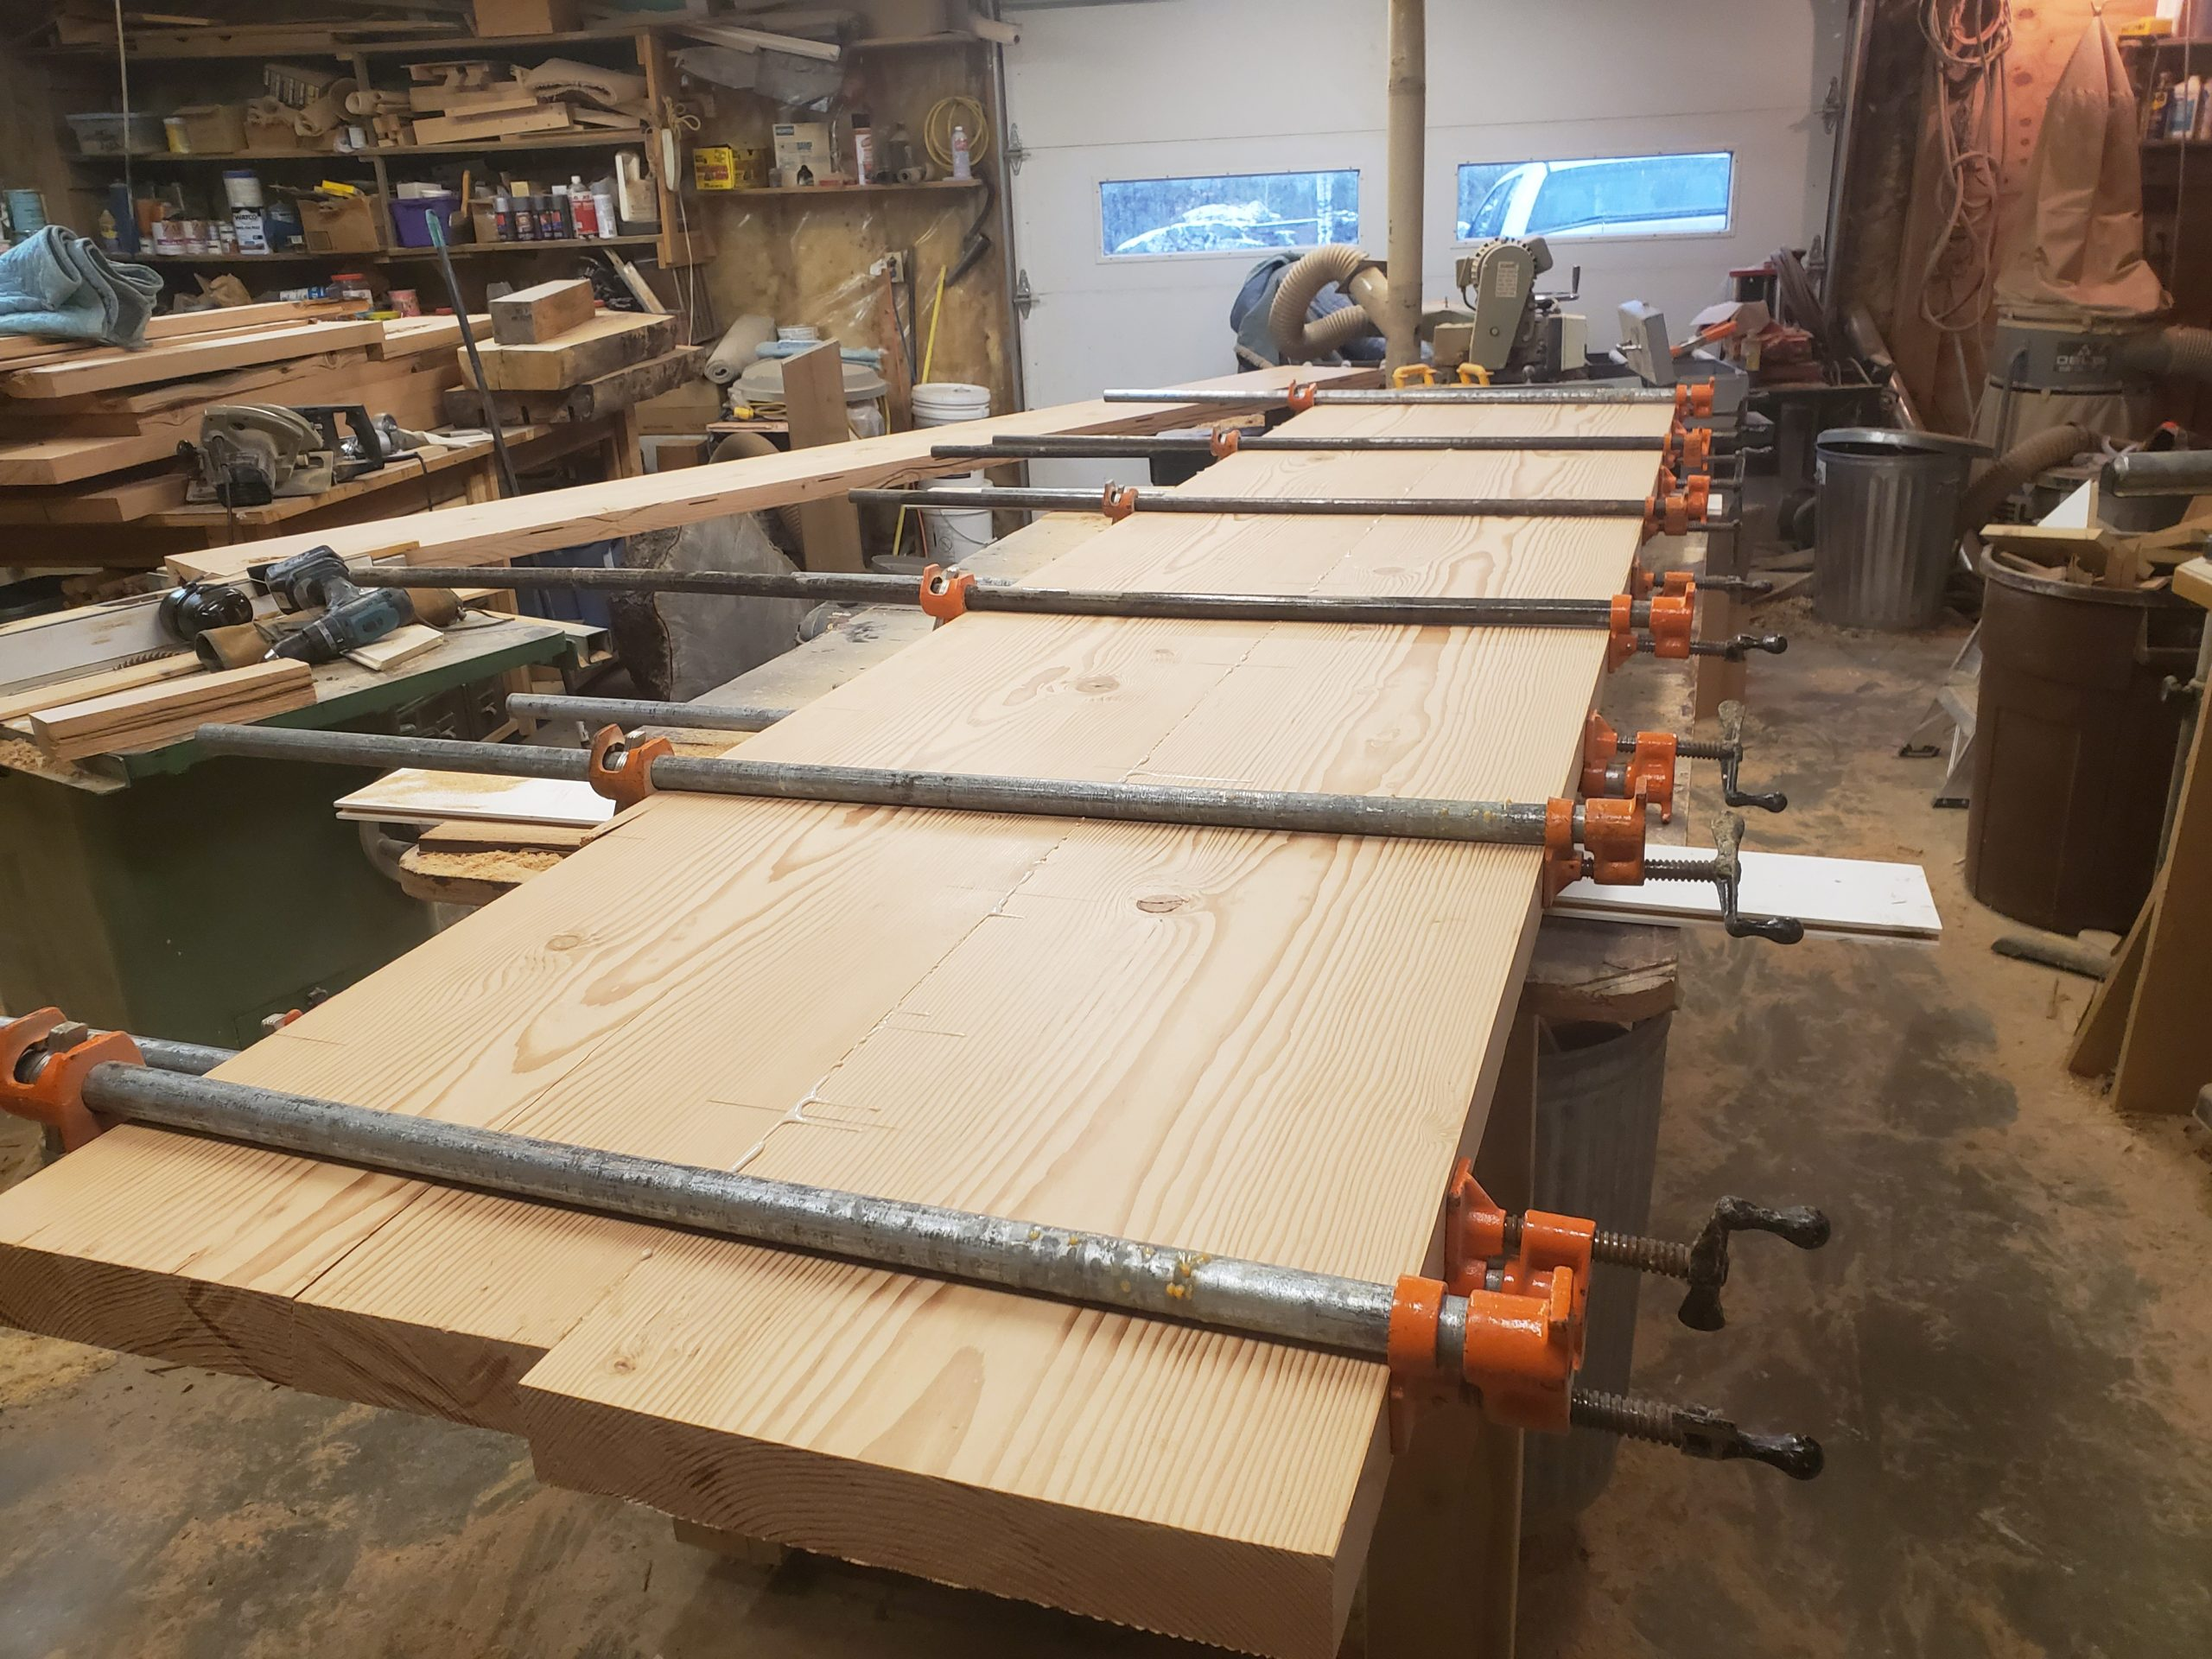 Gluing slabs of Douglas Fir for custom table by John Huisman